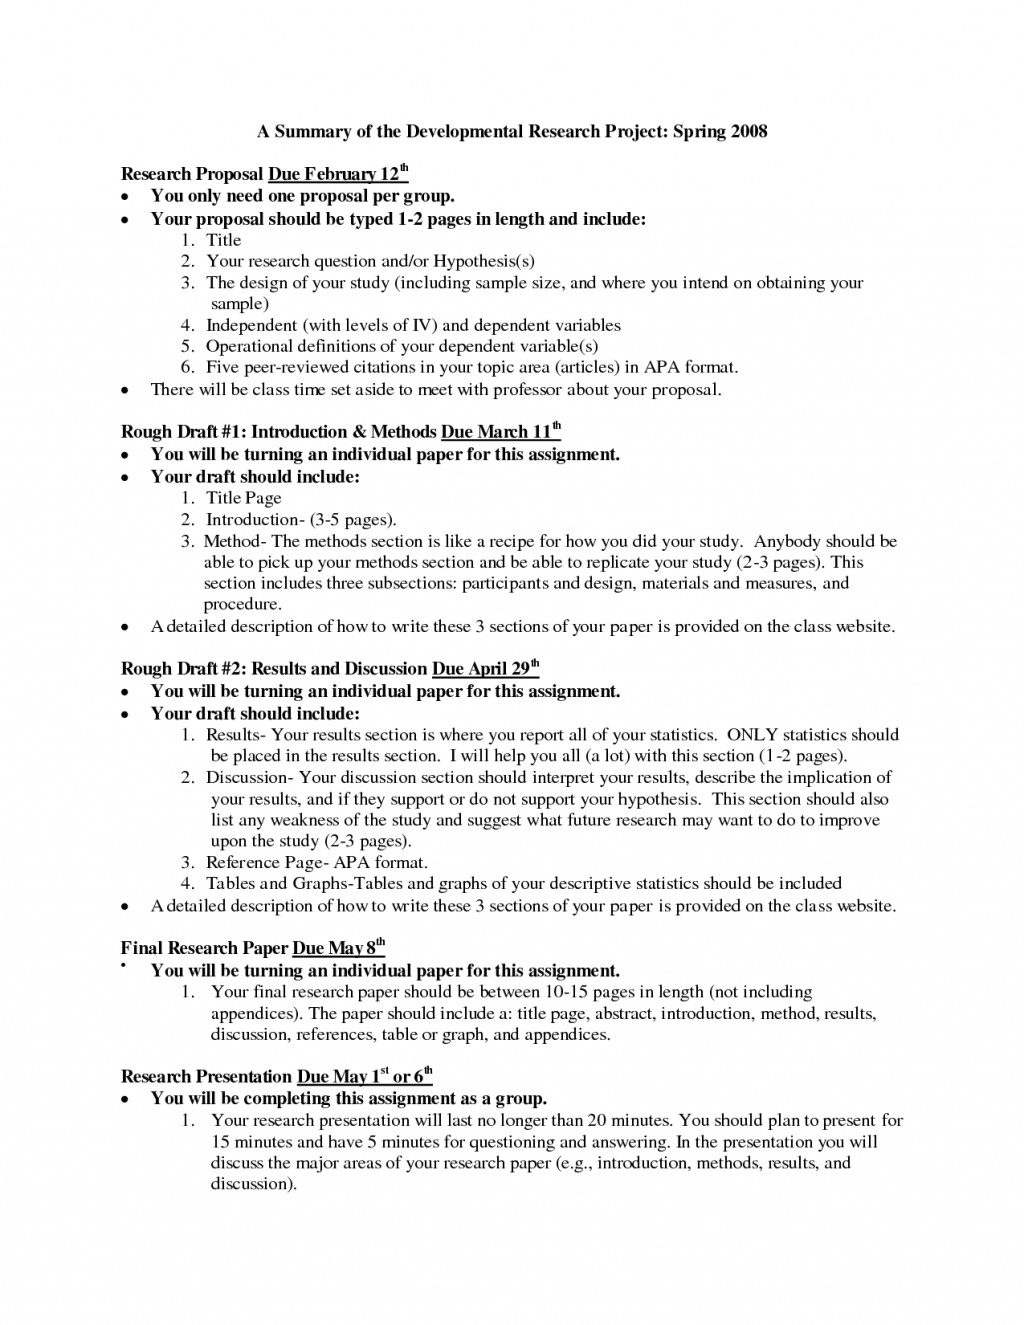 012 Good Research Paper Topic Psychology Undergraduate Resume Unique Sample Singular Topics For High School 2019 Easy Reddit Large